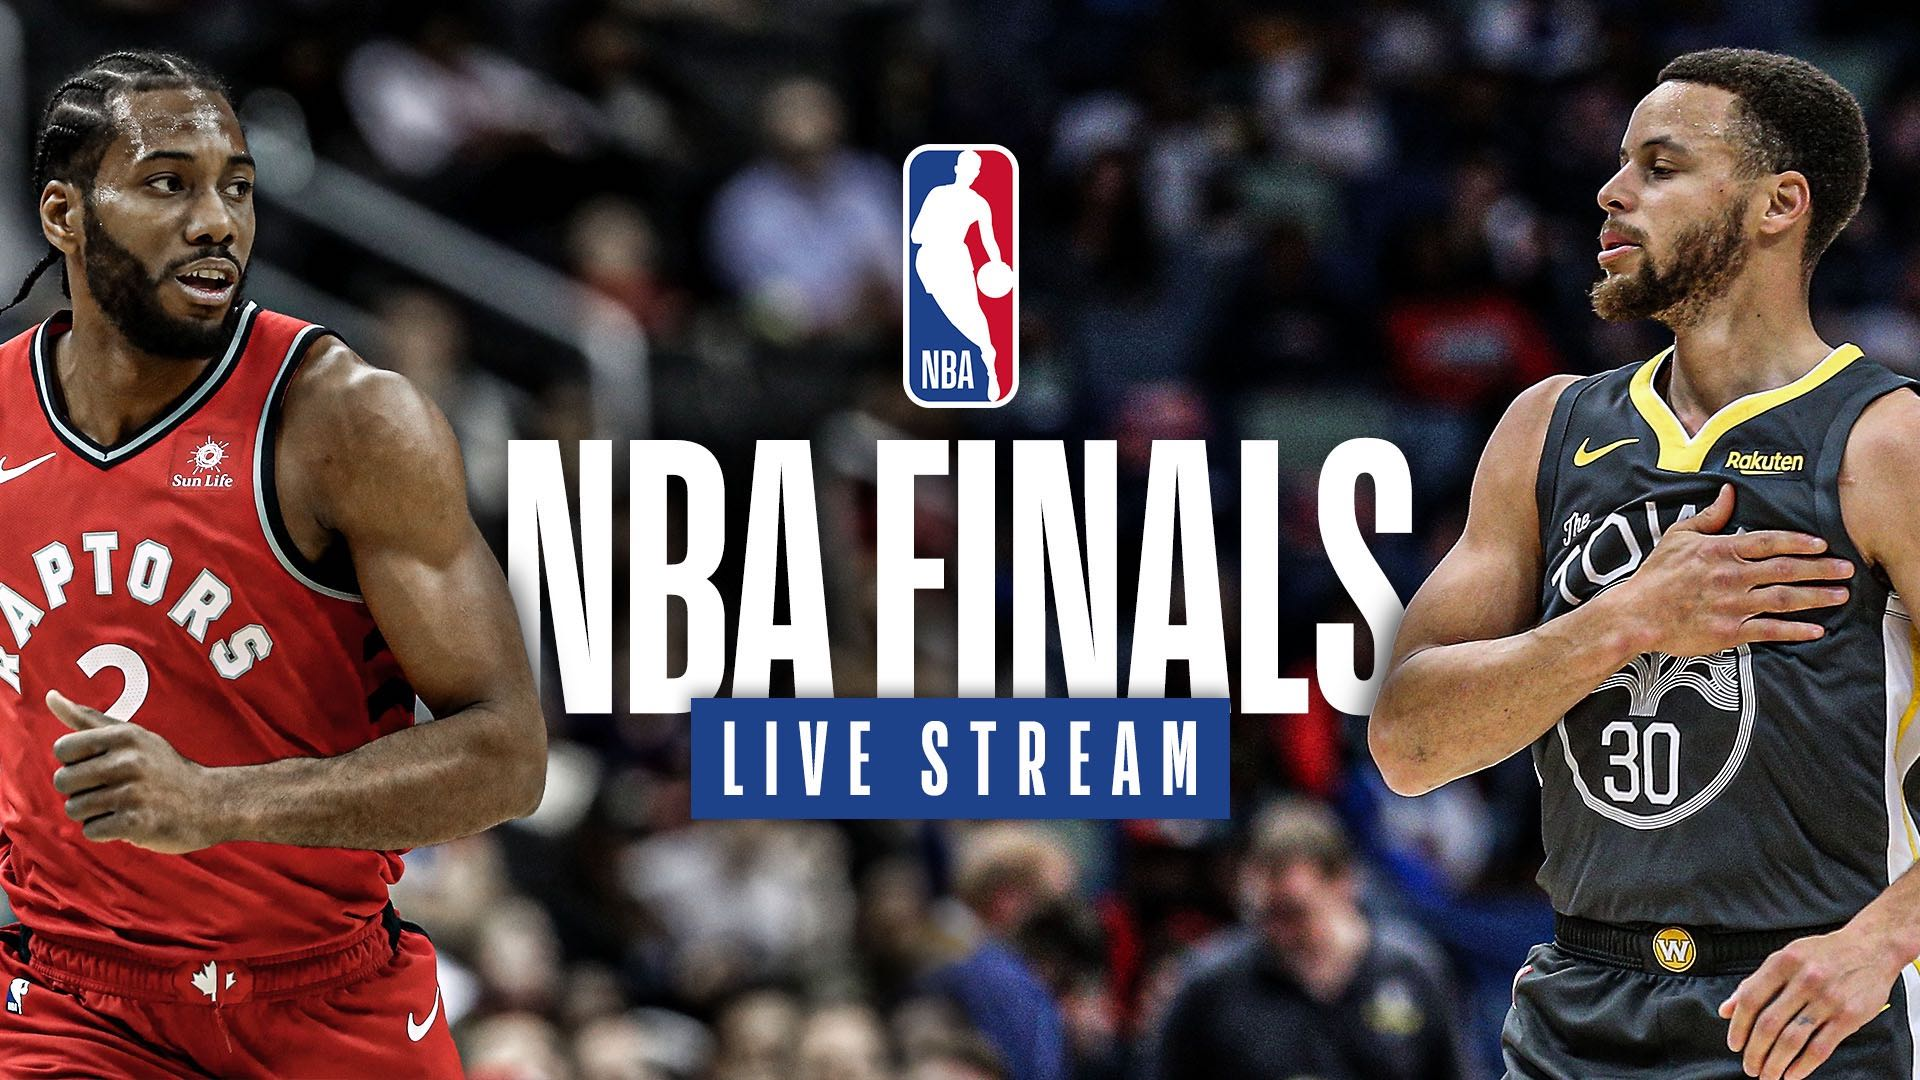 WATCH: Live stream of 2019 NBA Finals Game 6 in India on Facebook, Twitter and Youtube   NBA.com India   The official site of the NBA